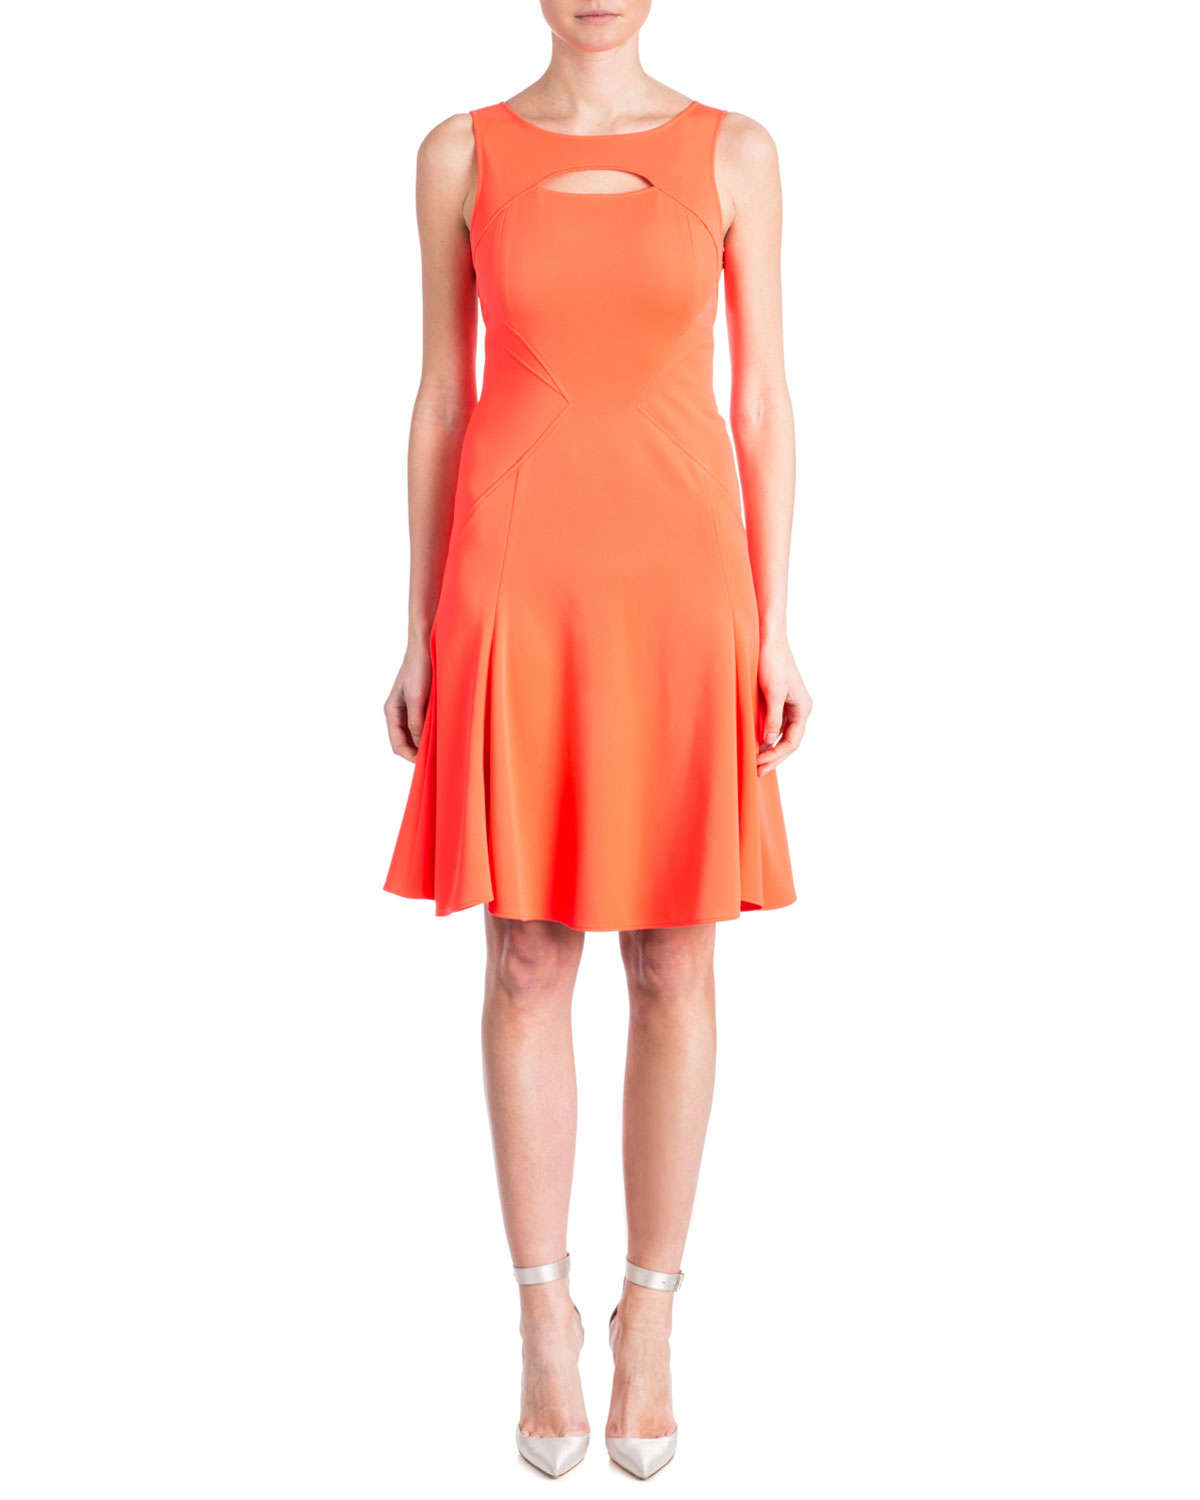 Lyst Zac Zac Posen Joanna Peek A Boo Contour Dress In Pink